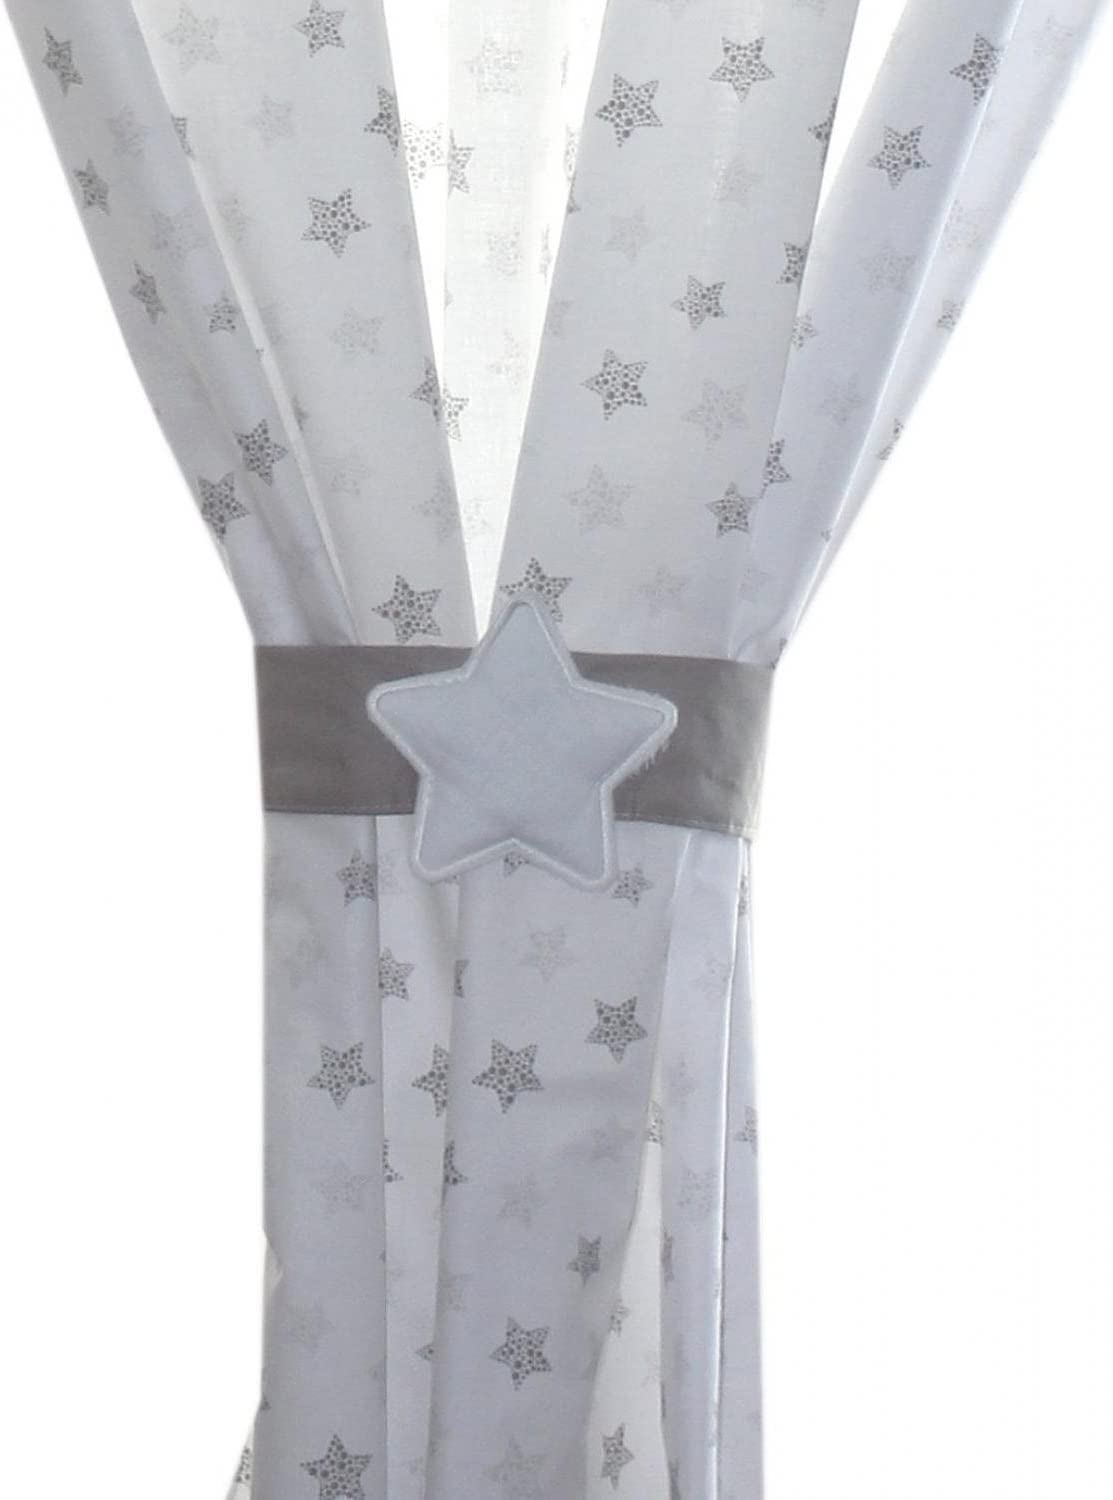 ca Drops Stars Gray 155x155 cm TupTam Childrens Room Curtains Set with Tieback Star